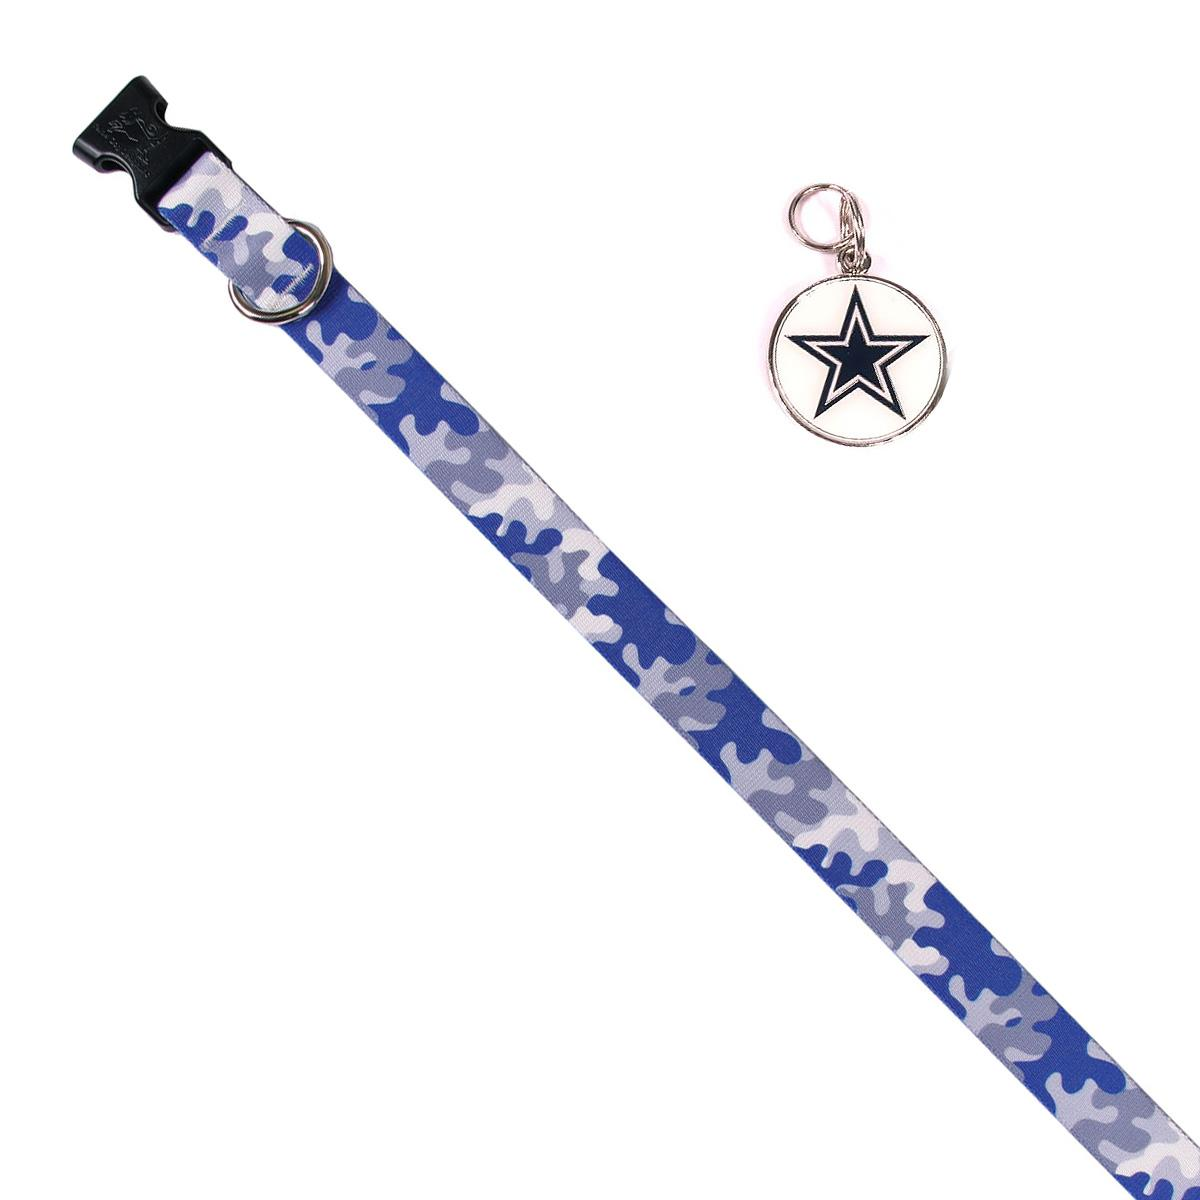 Dallas Cowboys Team Camo Dog Collar and Tag by Yellow Dog